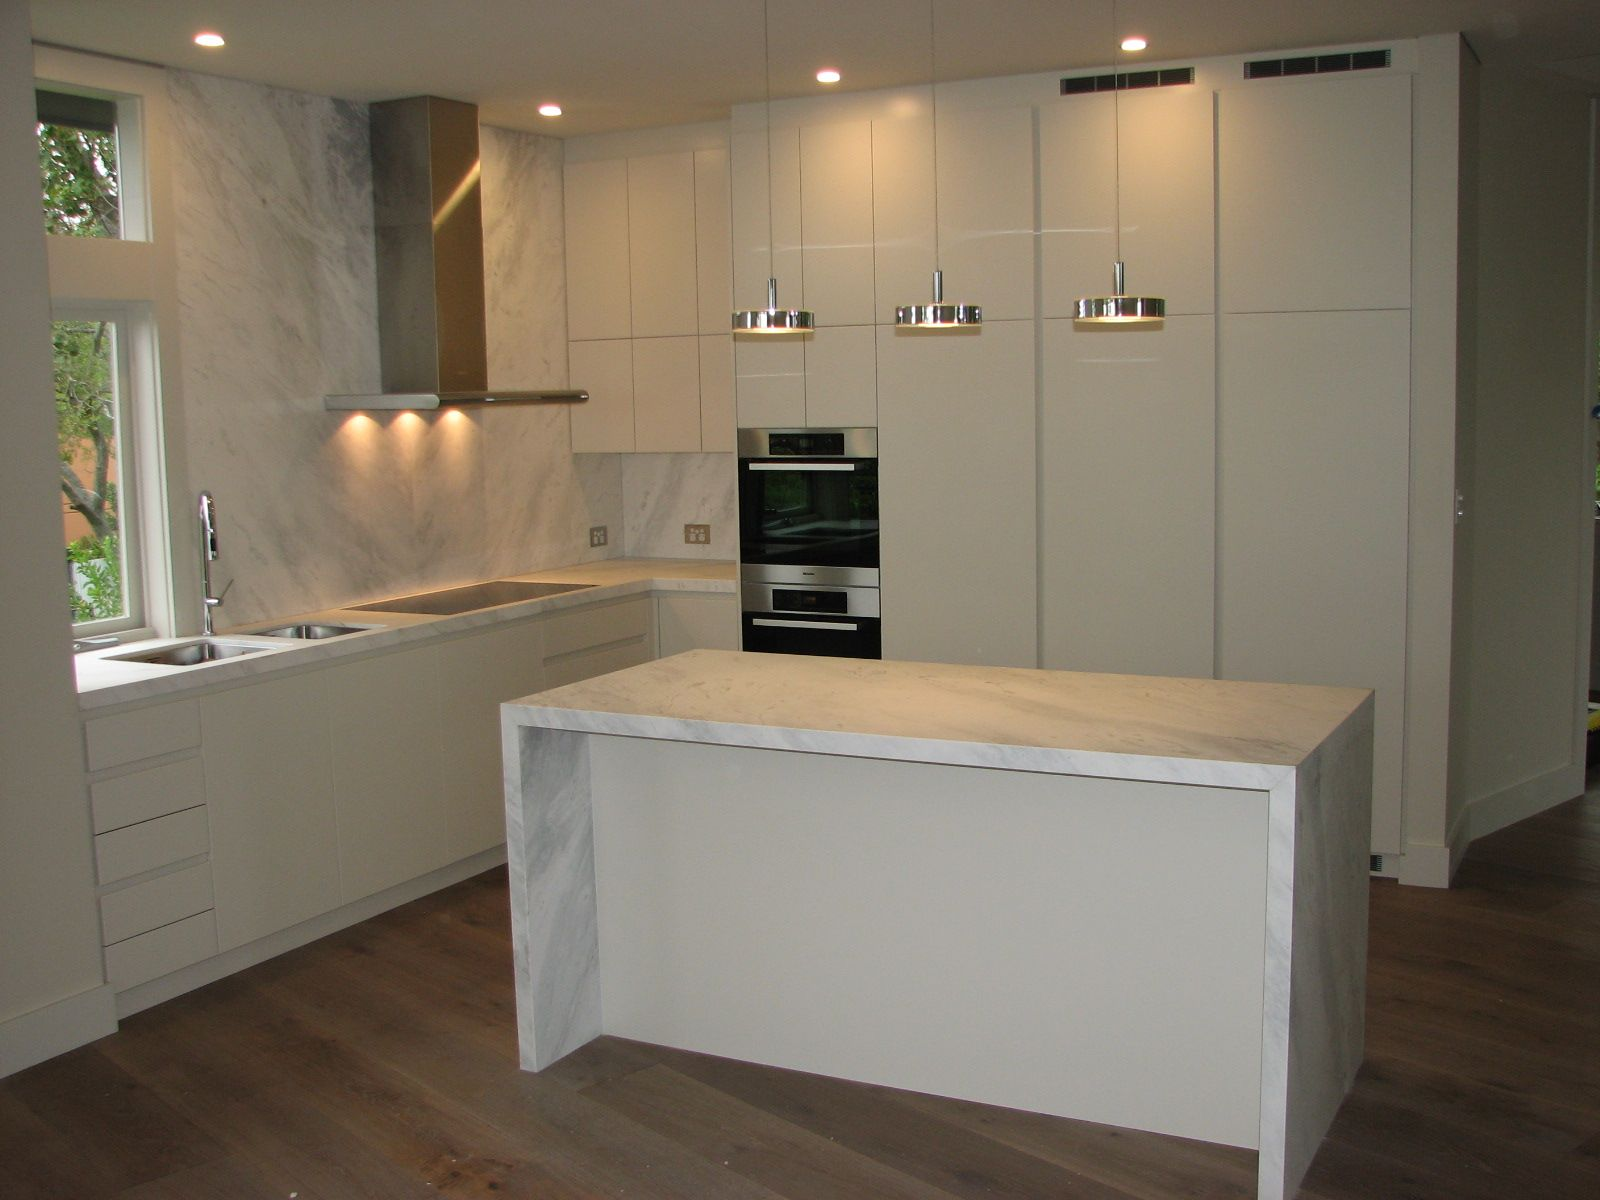 Contemporary Cupboards contemporary design featuring white polyurethane cupboards, finger